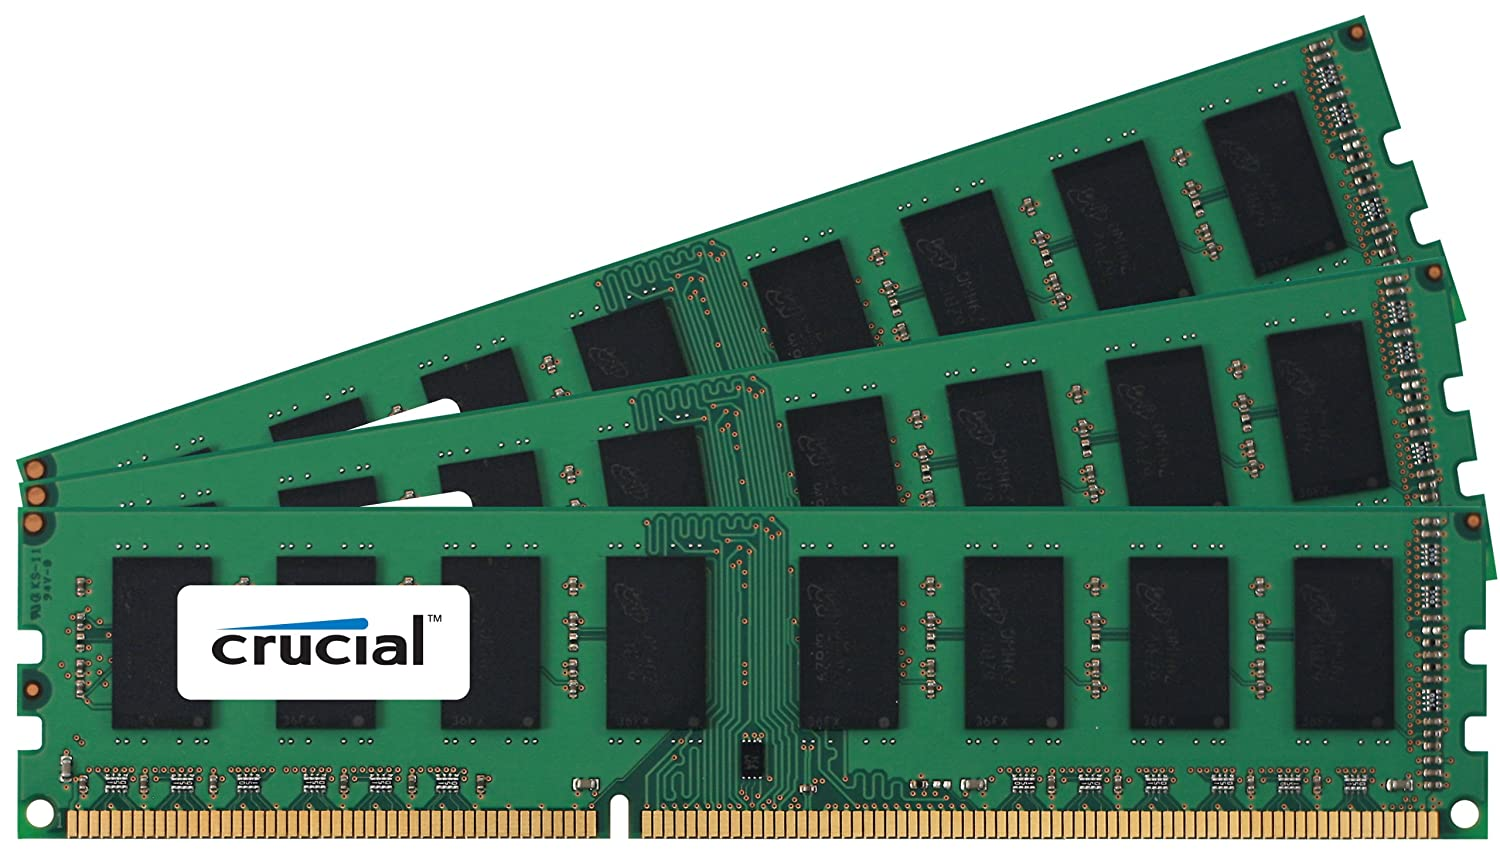 Crucial CT3KIT12864BA160B 3GB (3x 1GB) Memory Kit